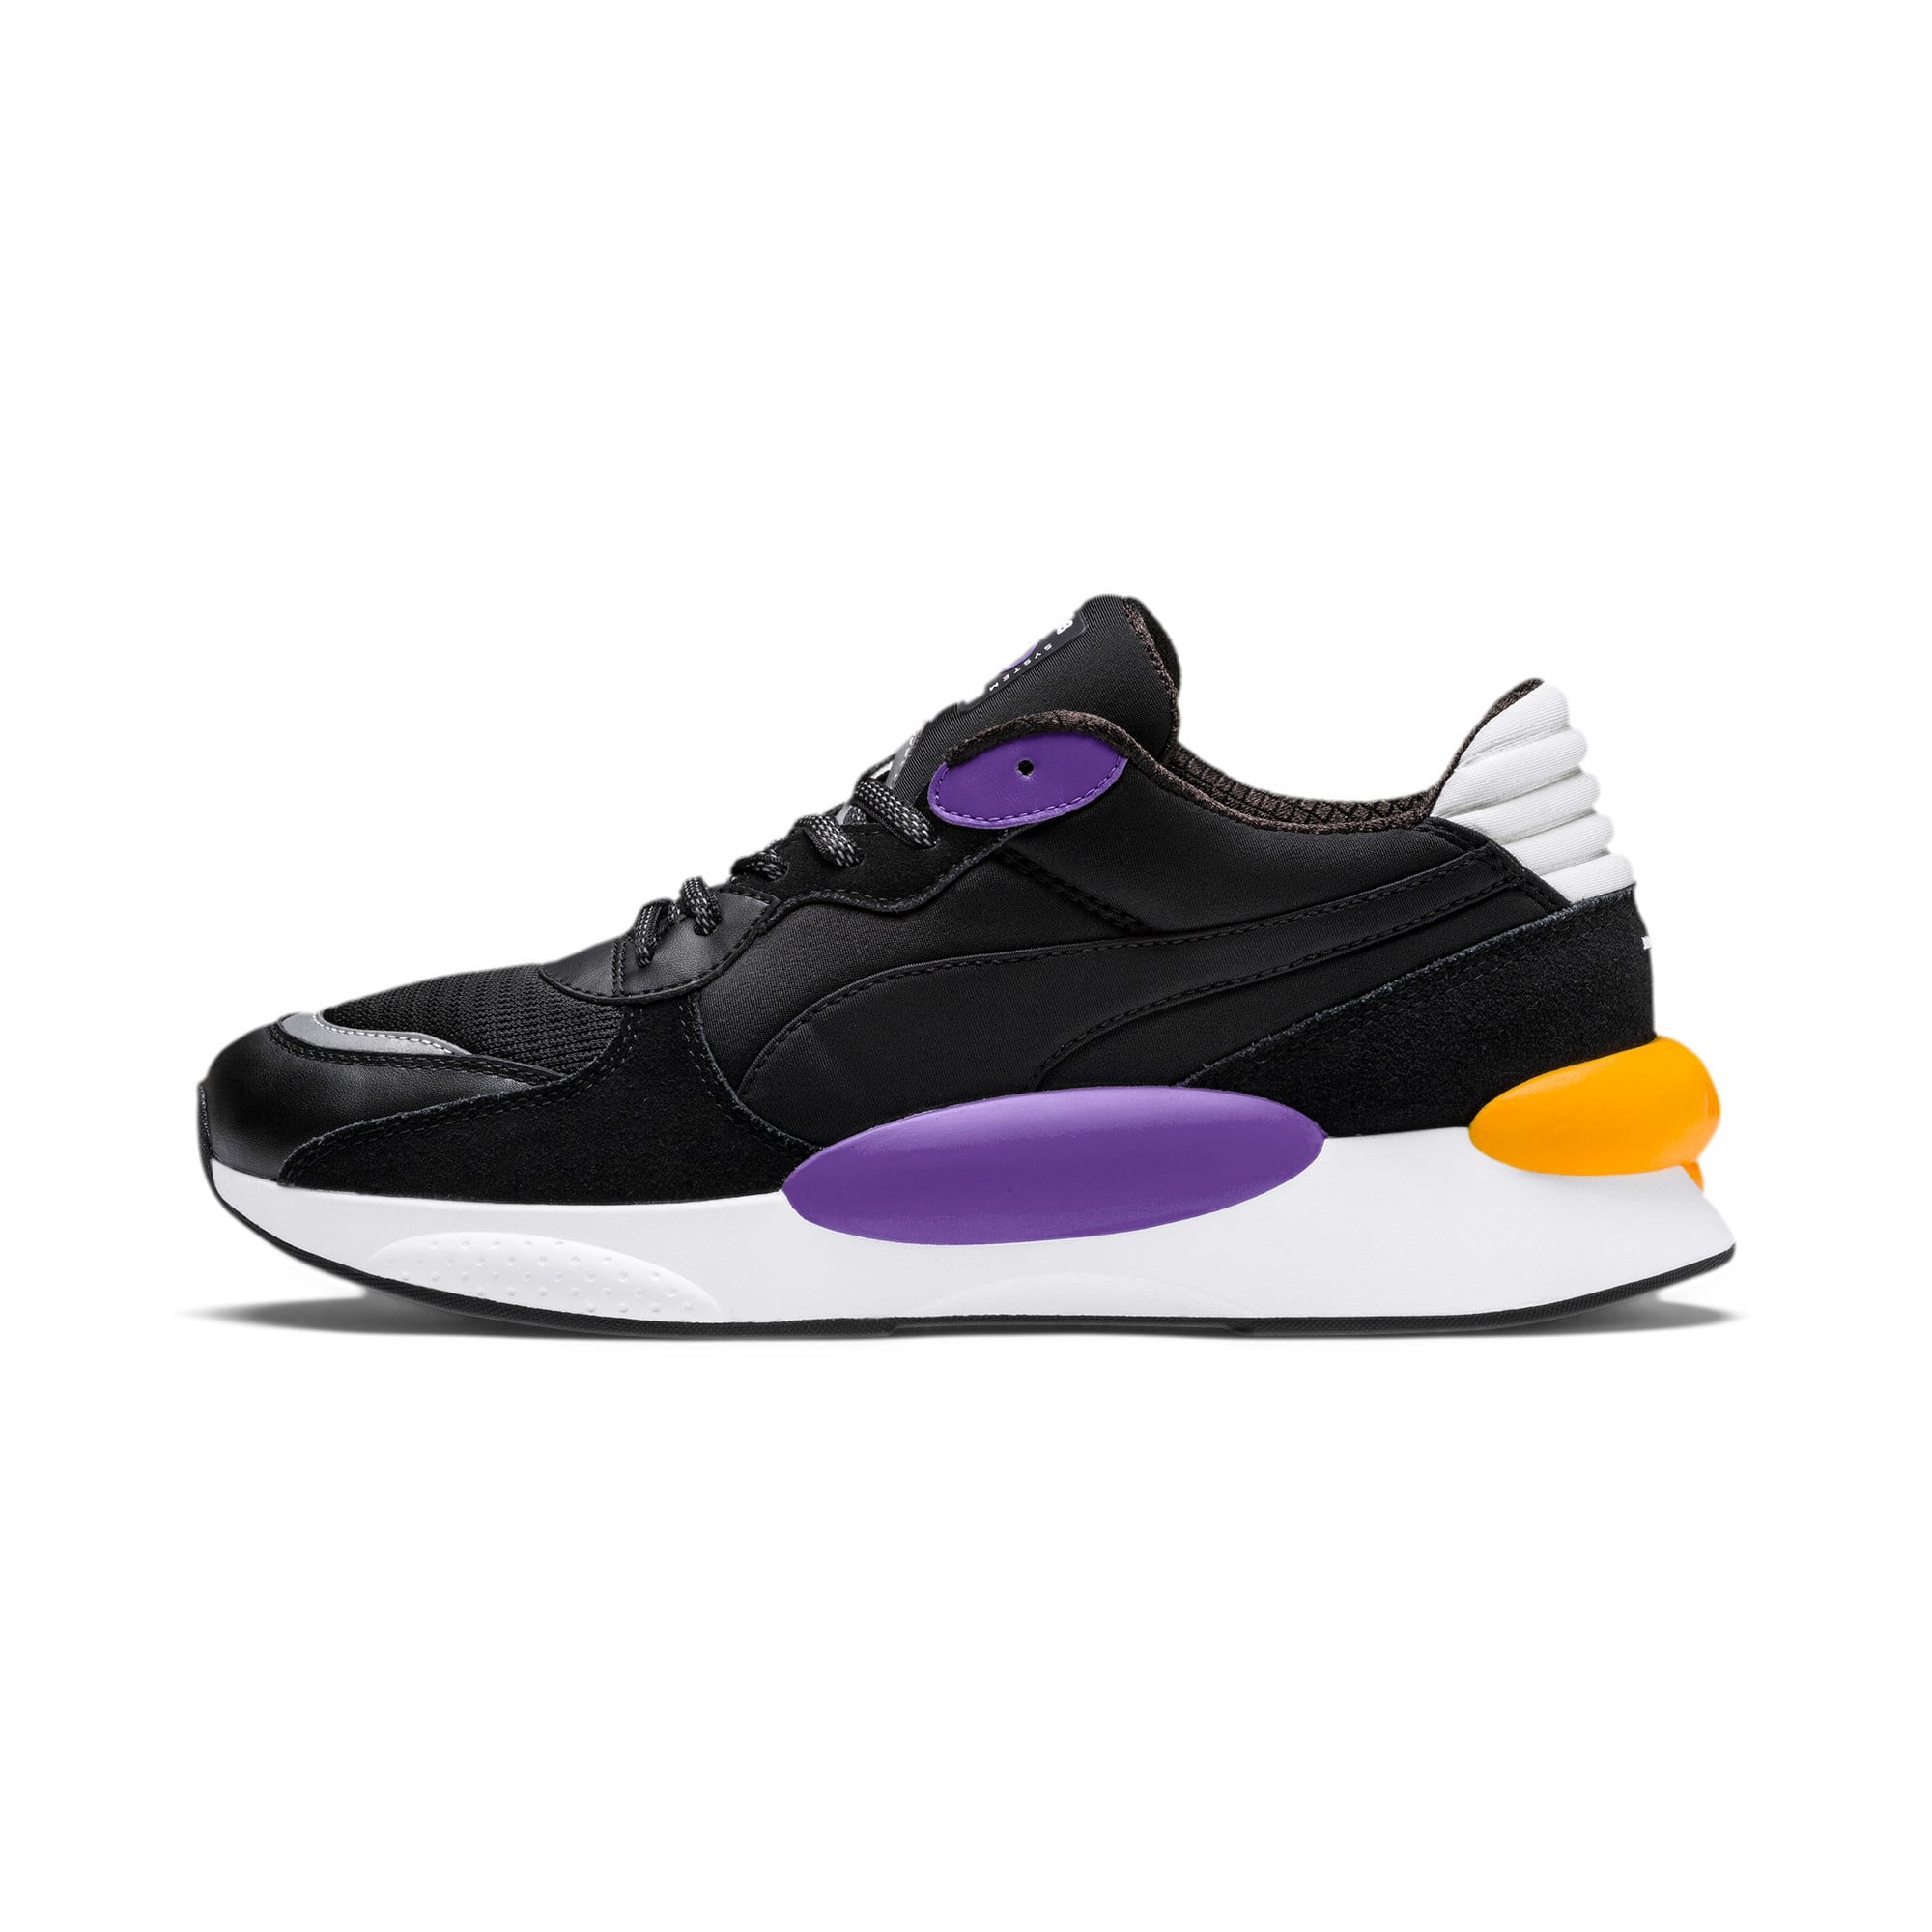 Thumbnail 1 of RS 9.8 Gravity Trainers, Puma Black-Purple Glimmer, medium